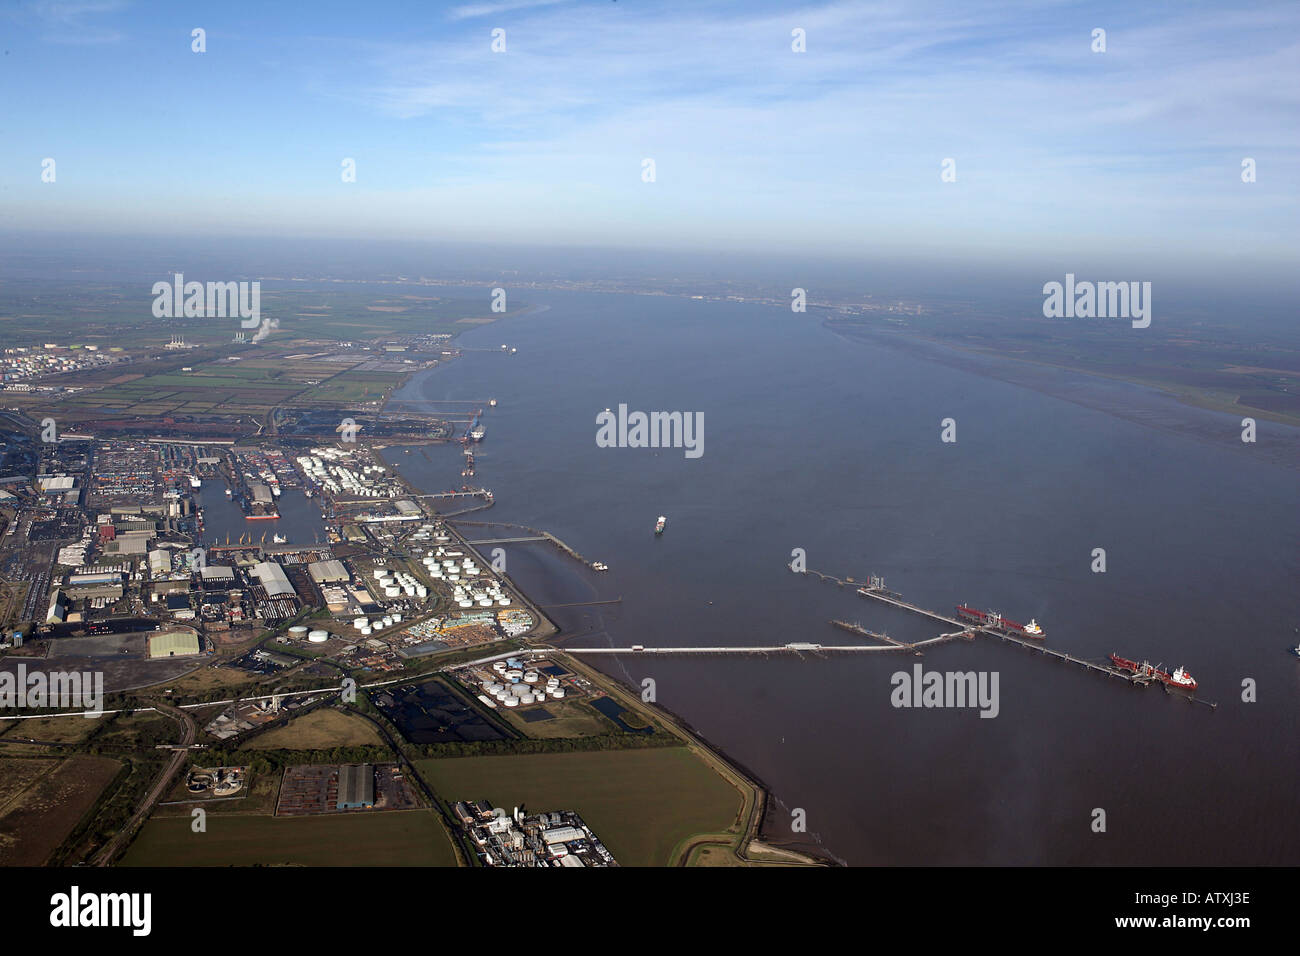 immingham docks stockfotos immingham docks bilder alamy. Black Bedroom Furniture Sets. Home Design Ideas